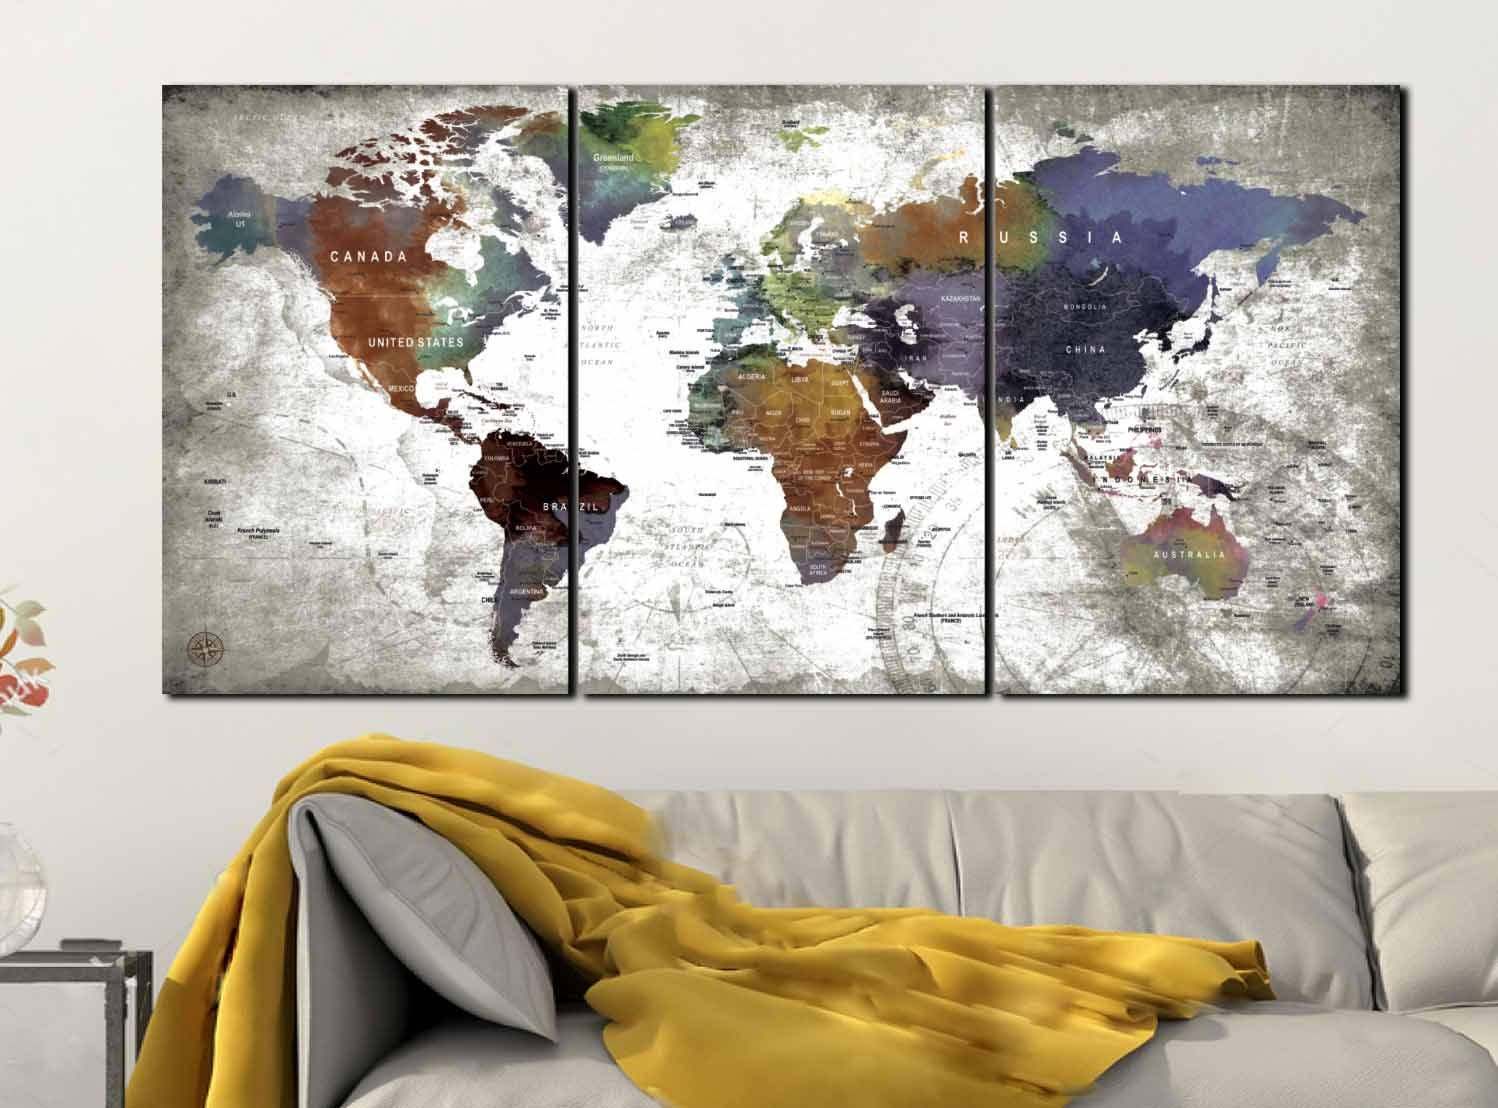 World map canvasworld map 3 panel canvas print world map canvas world map canvasworld map 3 panel canvas print world map canvas art watercolorworld map art printpush pin map canvastravel map canvas gumiabroncs Choice Image